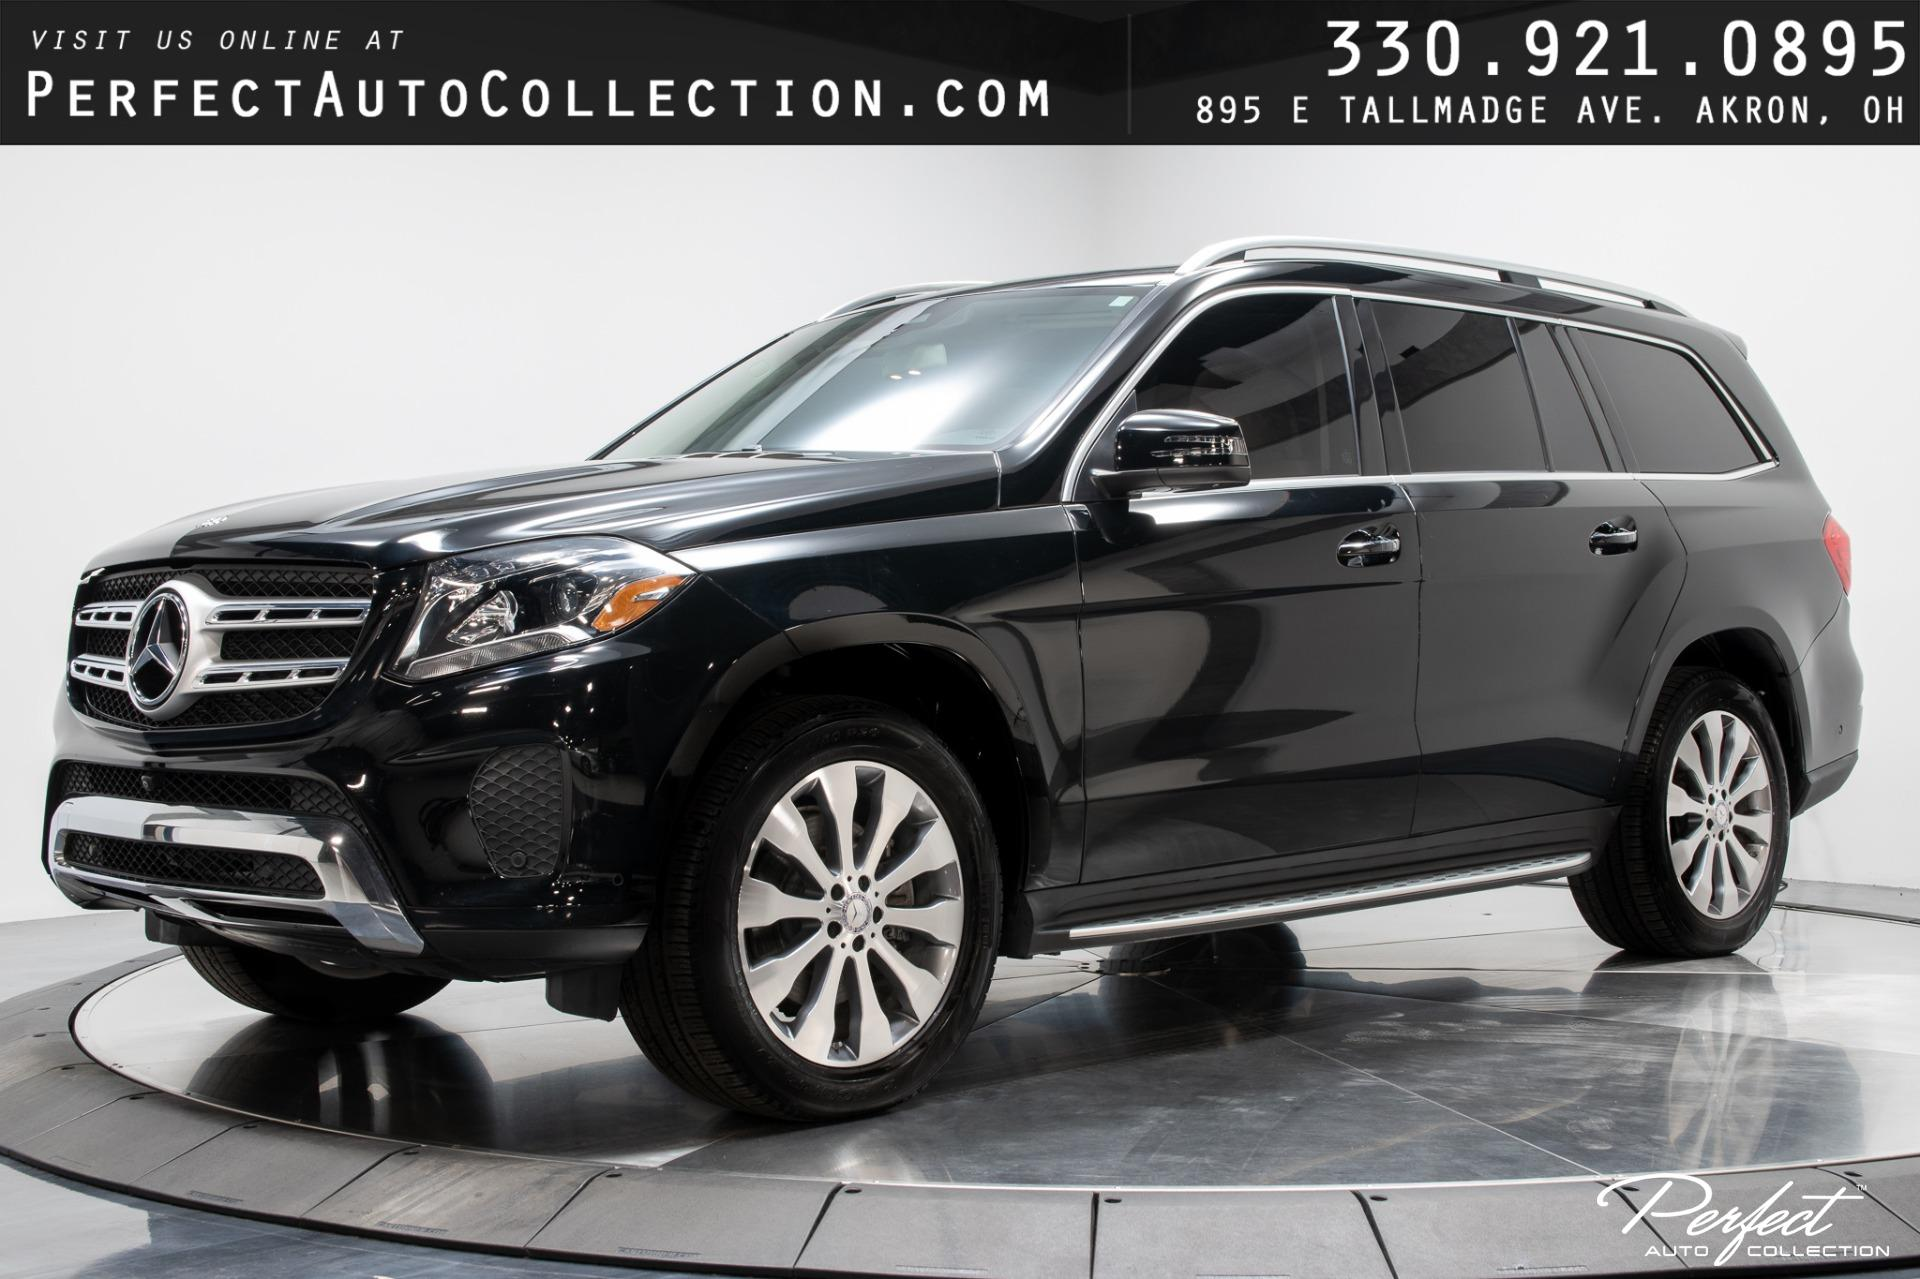 Used 2017 Mercedes-Benz GLS GLS 450 for sale Sold at Perfect Auto Collection in Akron OH 44310 1